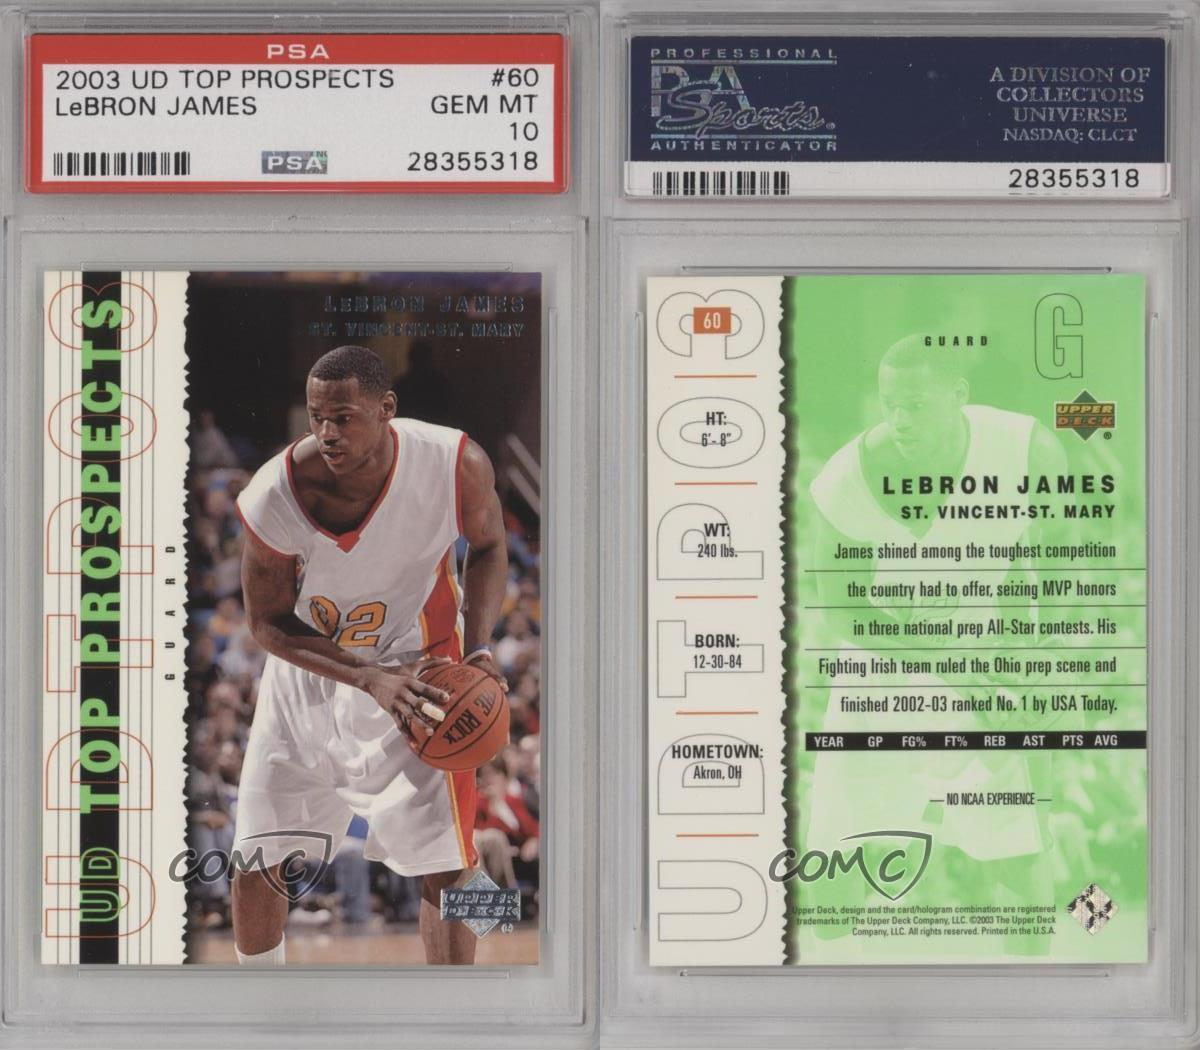 2003 Upper Deck UD Top Prospects #60 Lebron James PSA 10